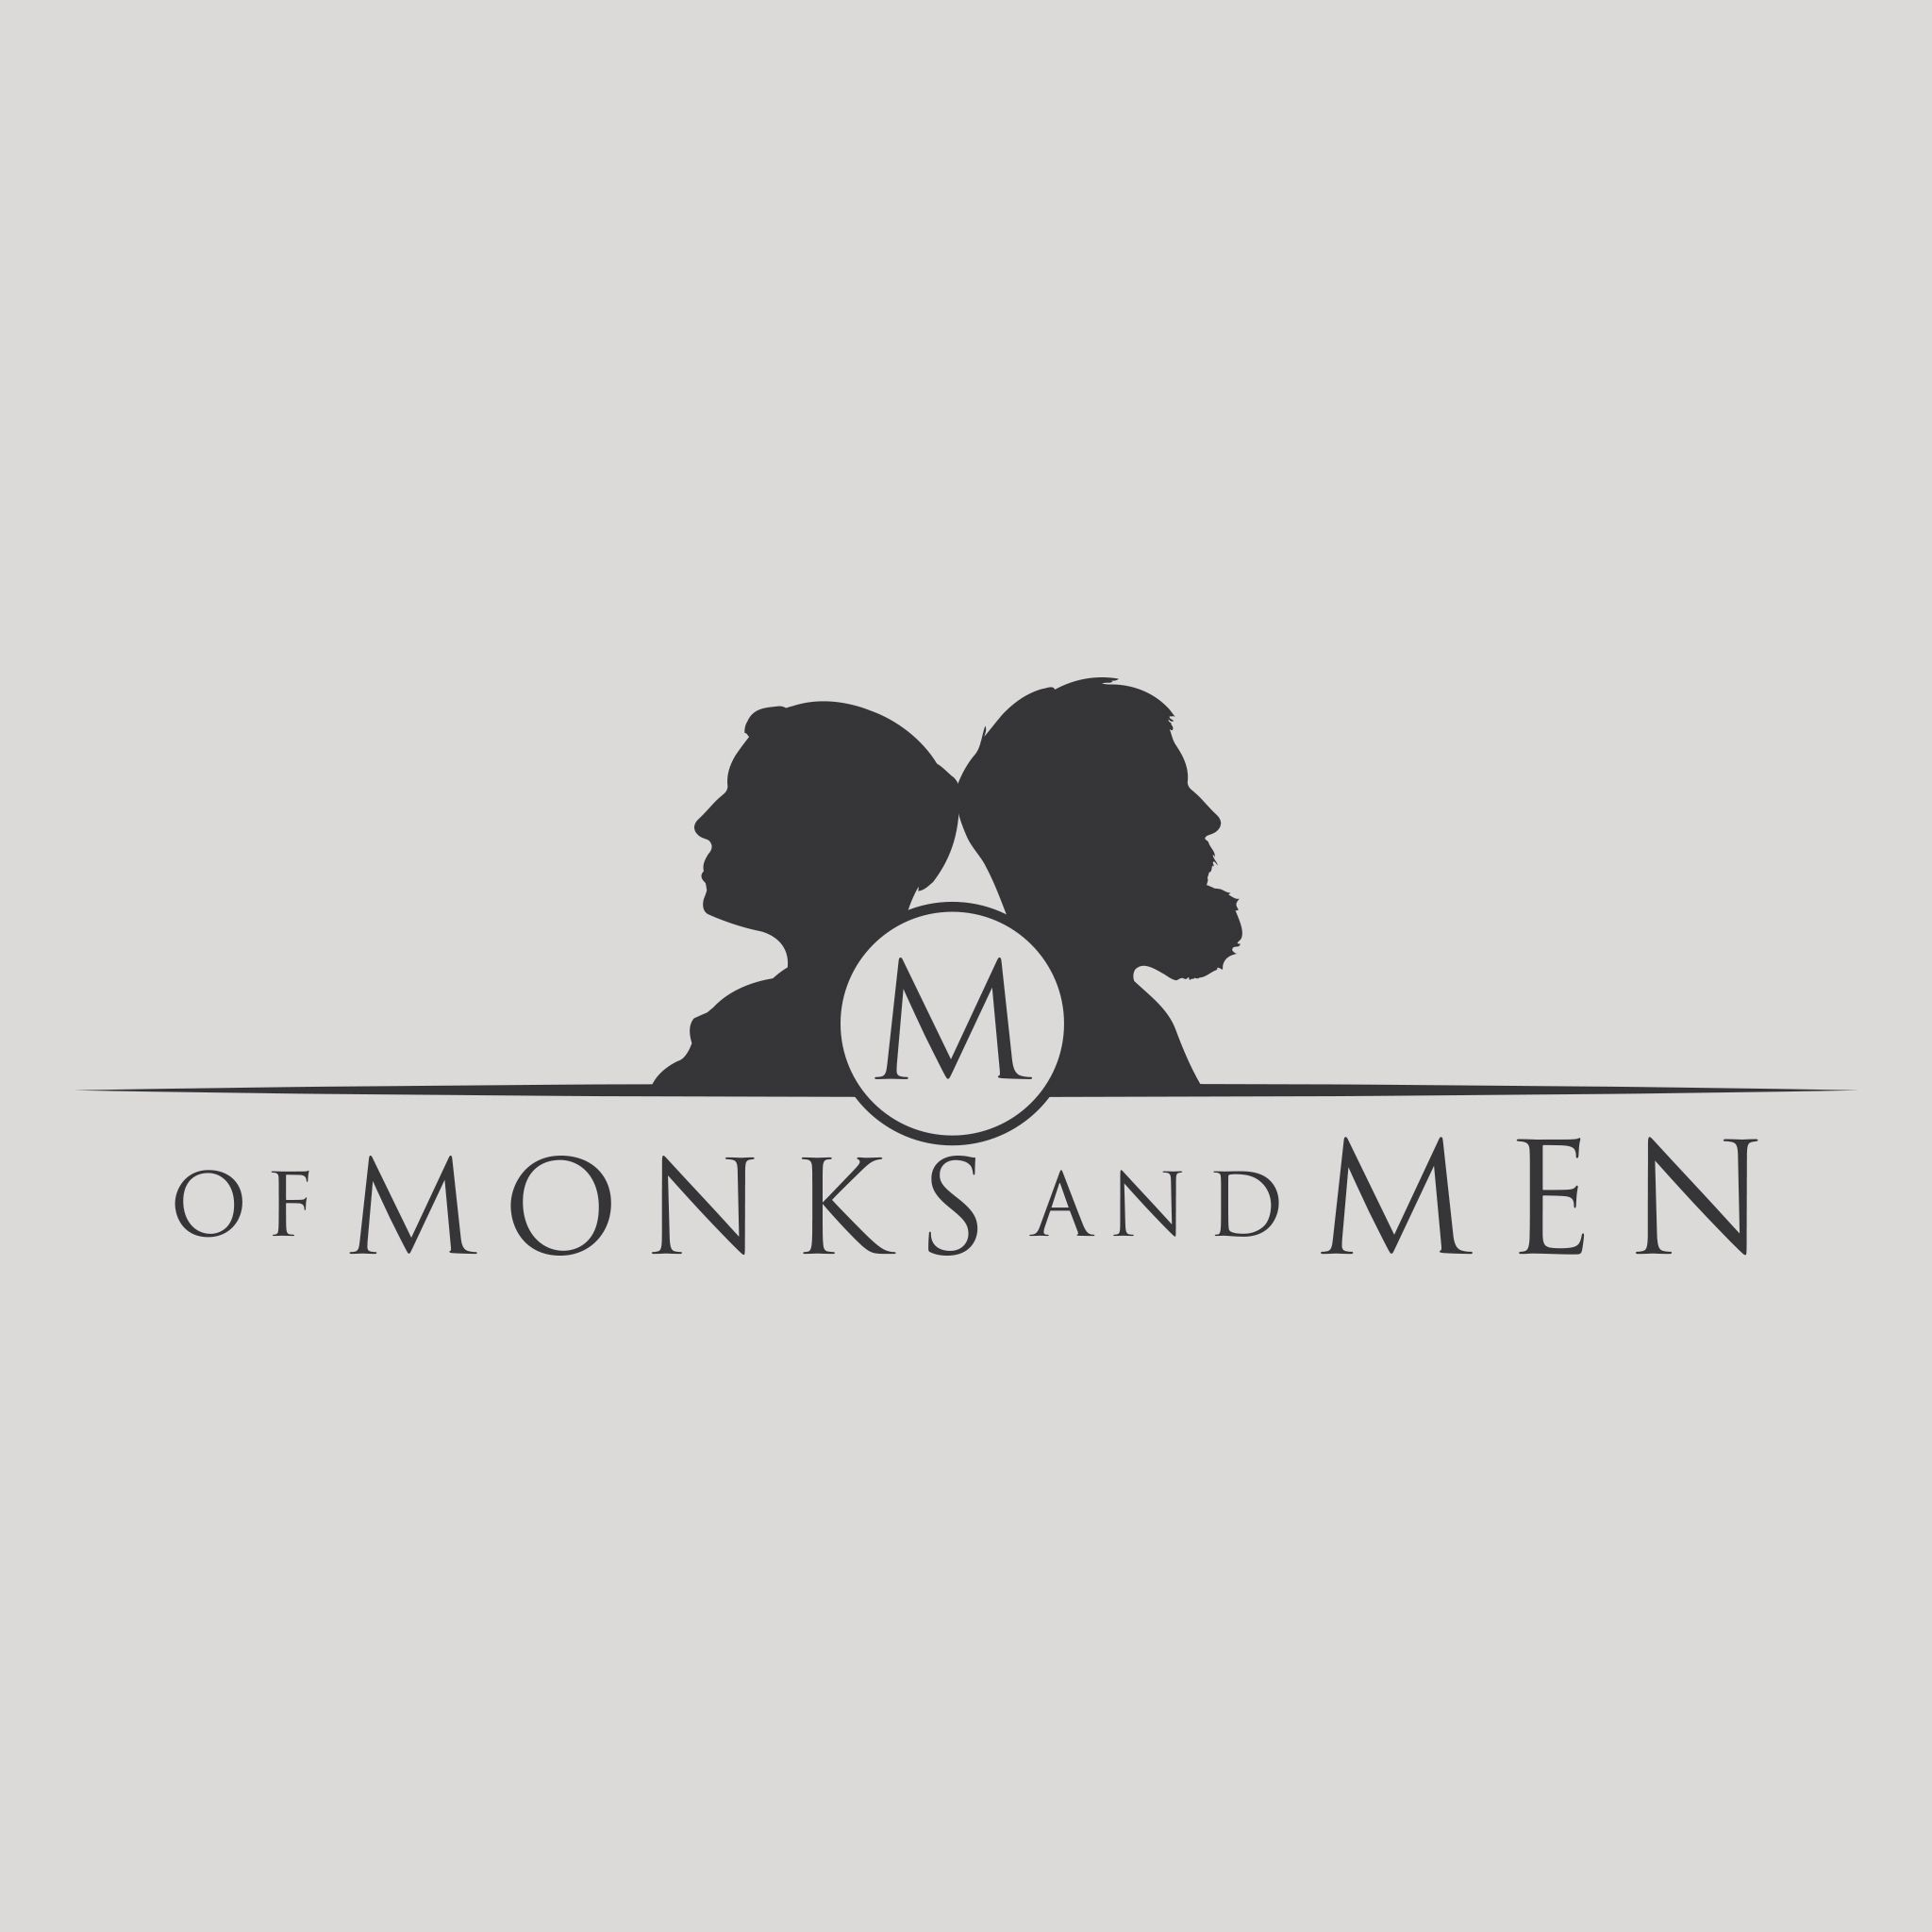 Of Monks and Men Podcast